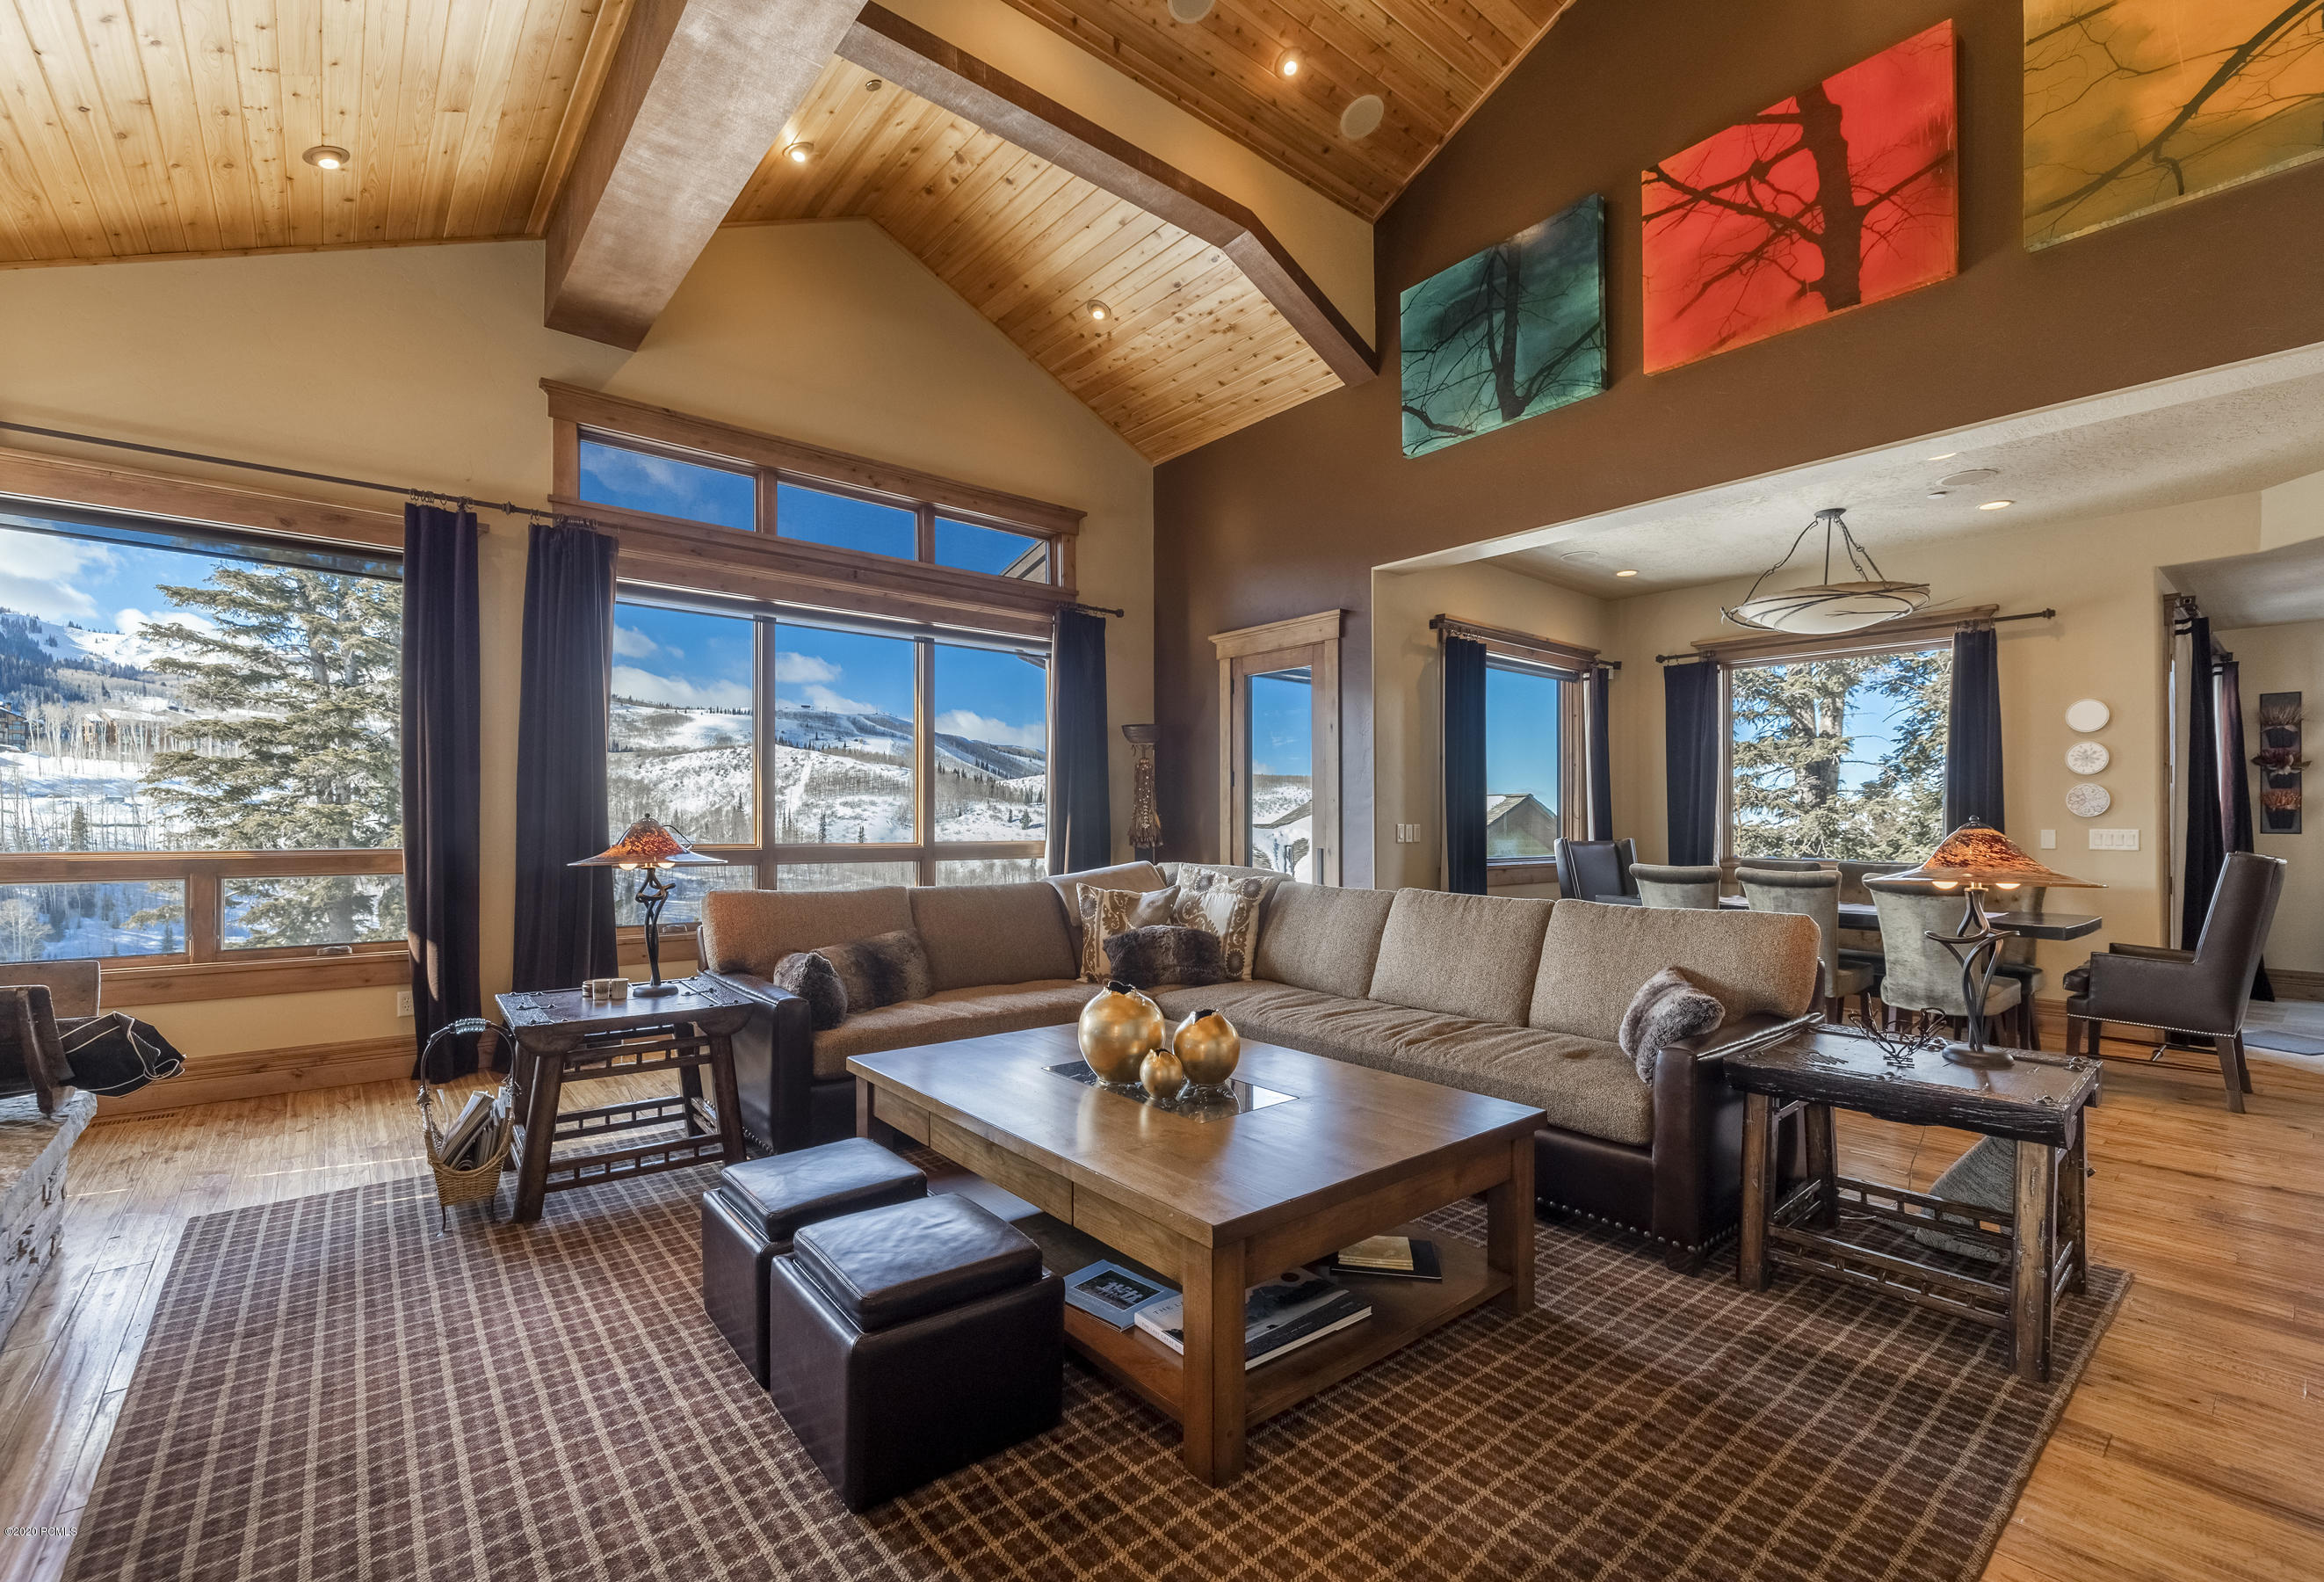 6587 Lookout Drive, Park City, Utah 84060, 5 Bedrooms Bedrooms, ,7 BathroomsBathrooms,Single Family,For Sale,Lookout,20190109112430415765000000